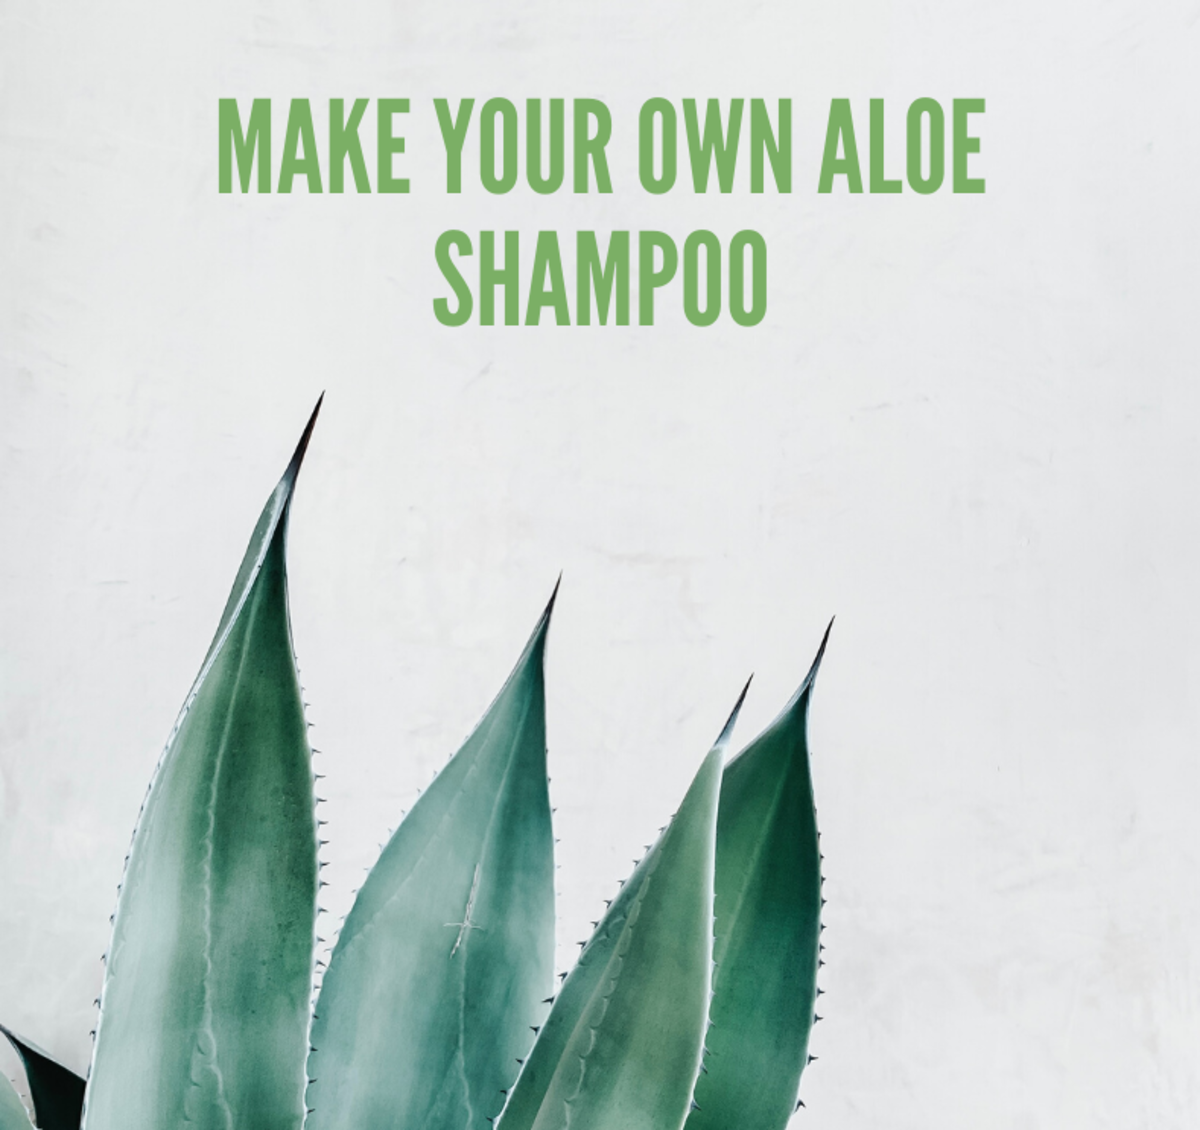 Aloe Vera Shampoo Recipe: Make Your Own Aloe Shampoo